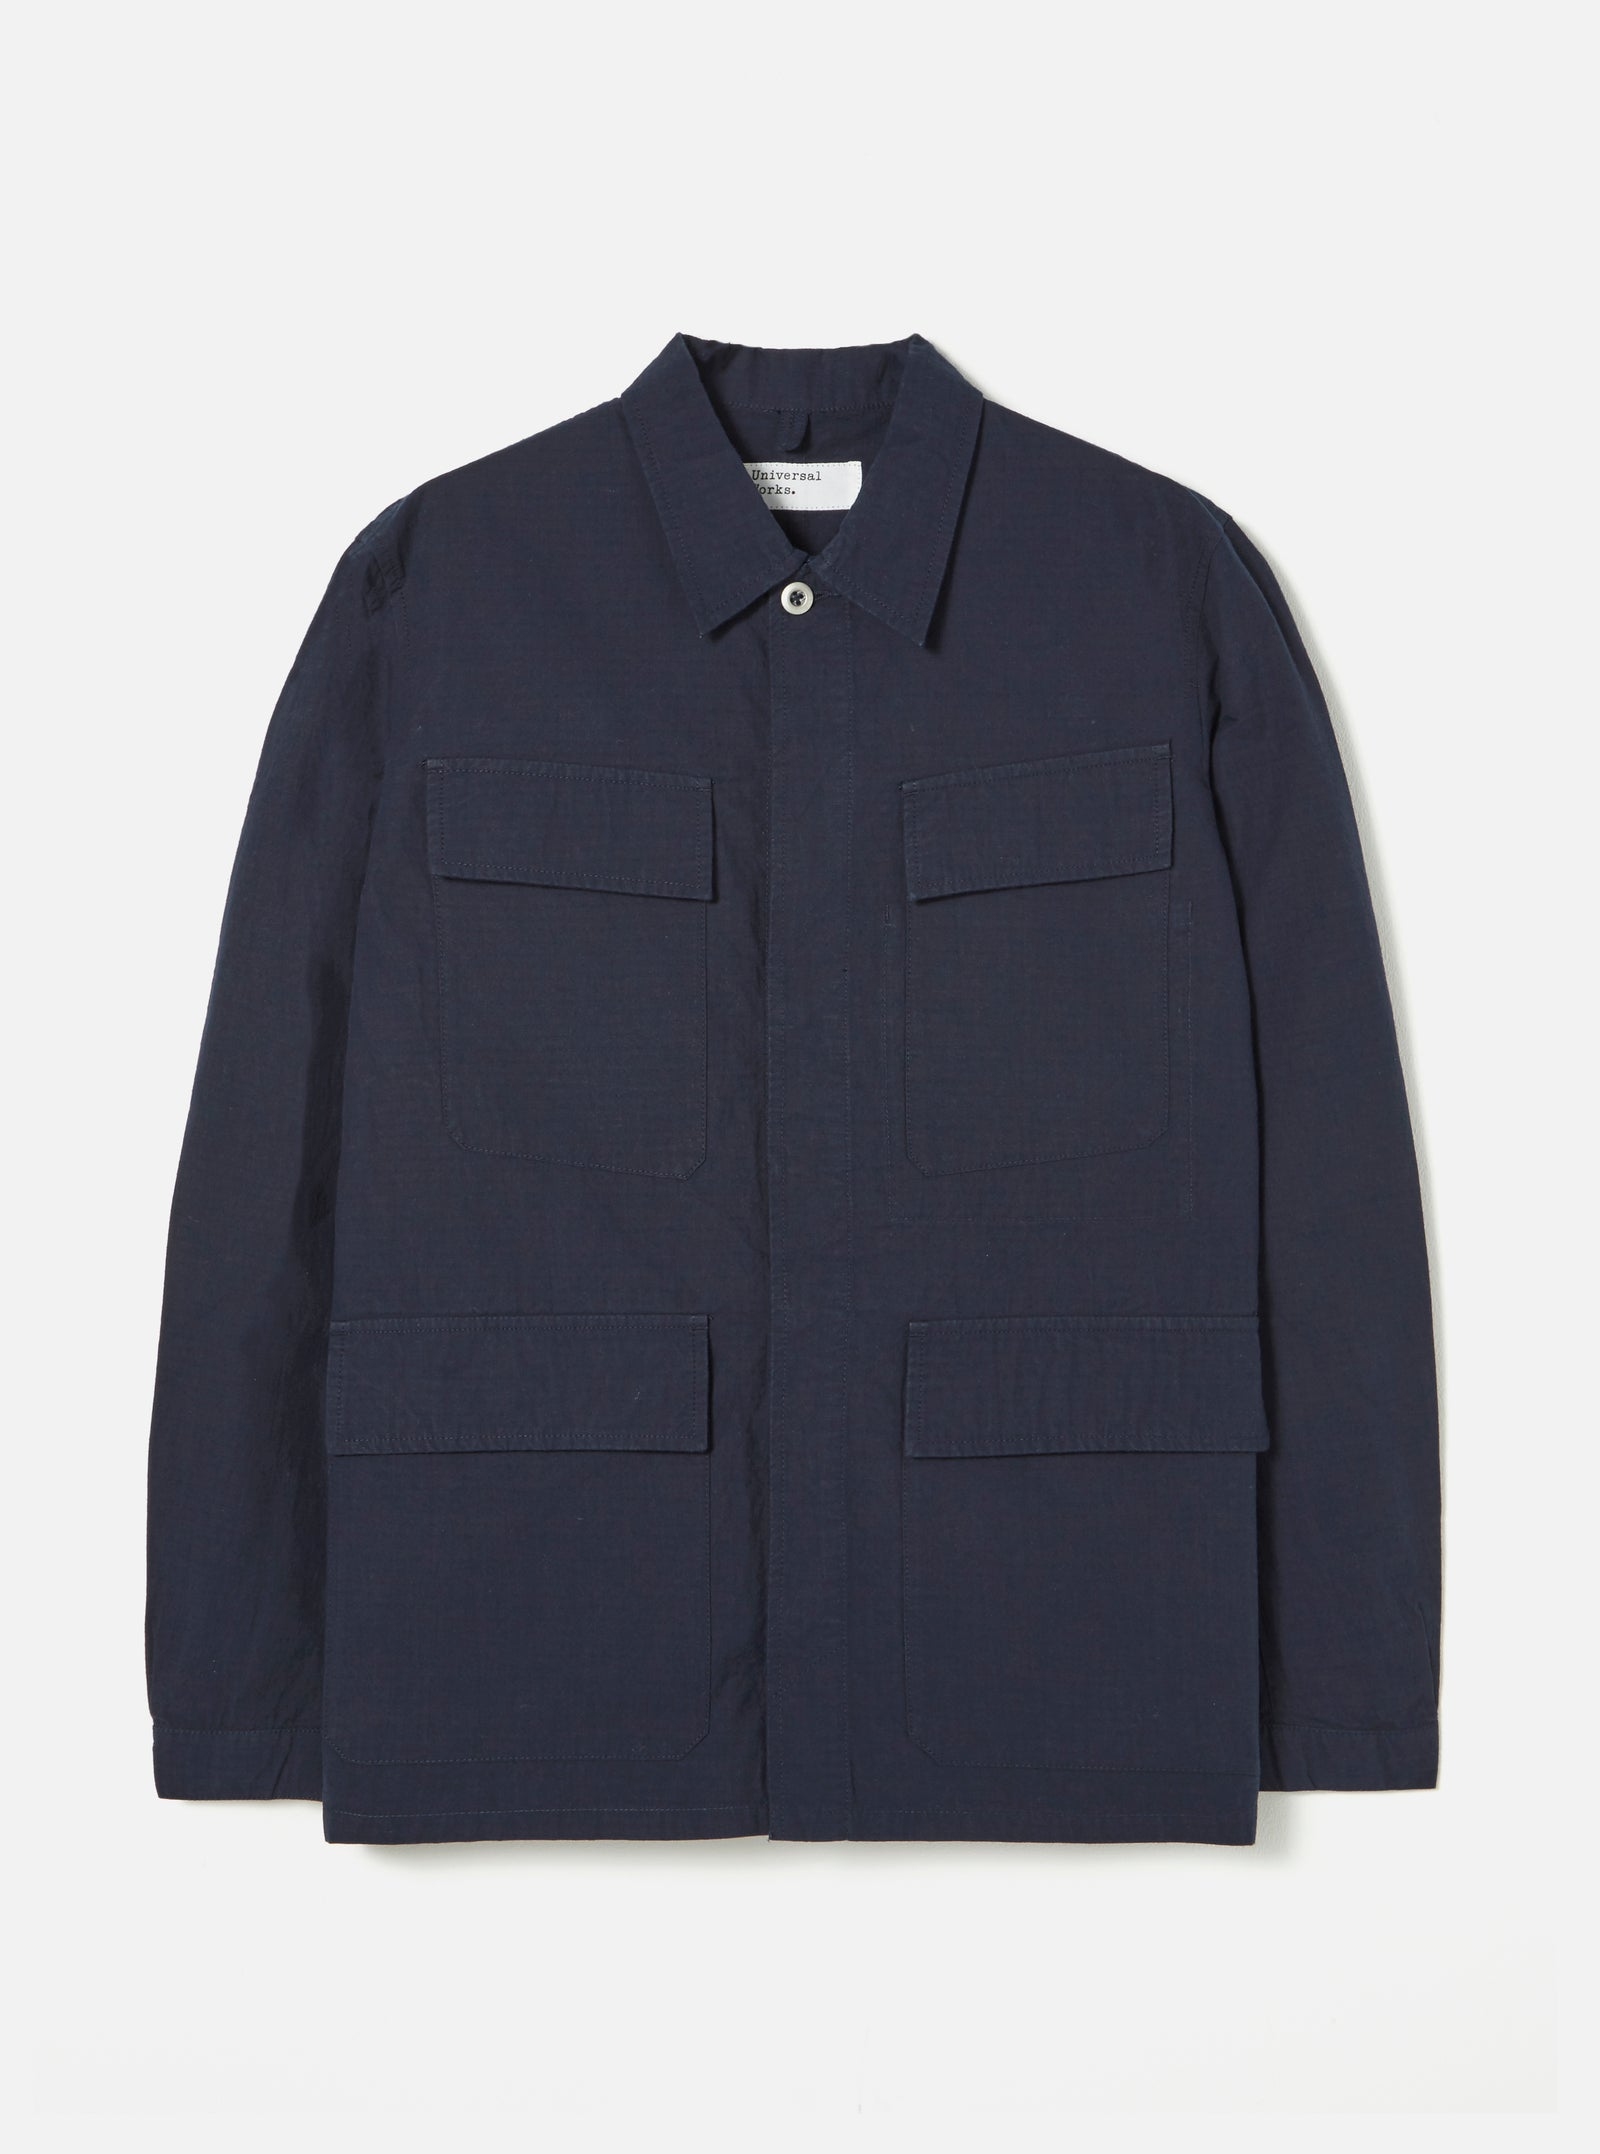 Universal Works MW Fatigue Jacket in Navy Ripstop Cotton